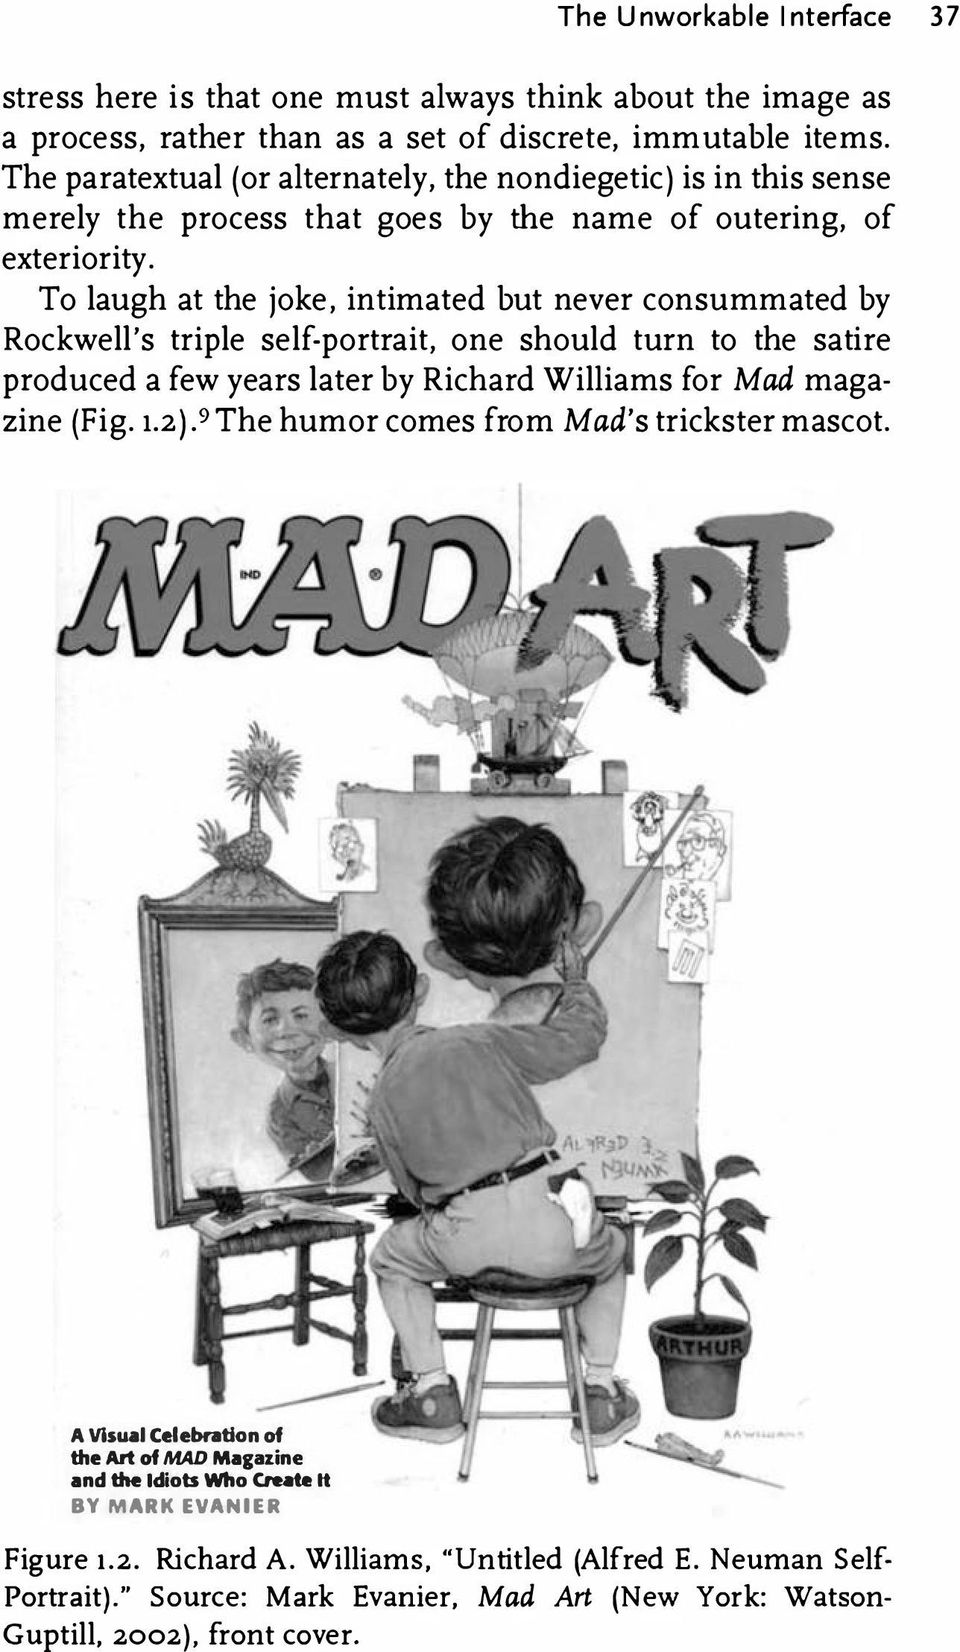 To laugh at the joke, intimated but never consummated by Rockwell's triple self-portrait, one should turn to the satire produced a few years later by Richard Williams for Mad magazine (Fig. 1.